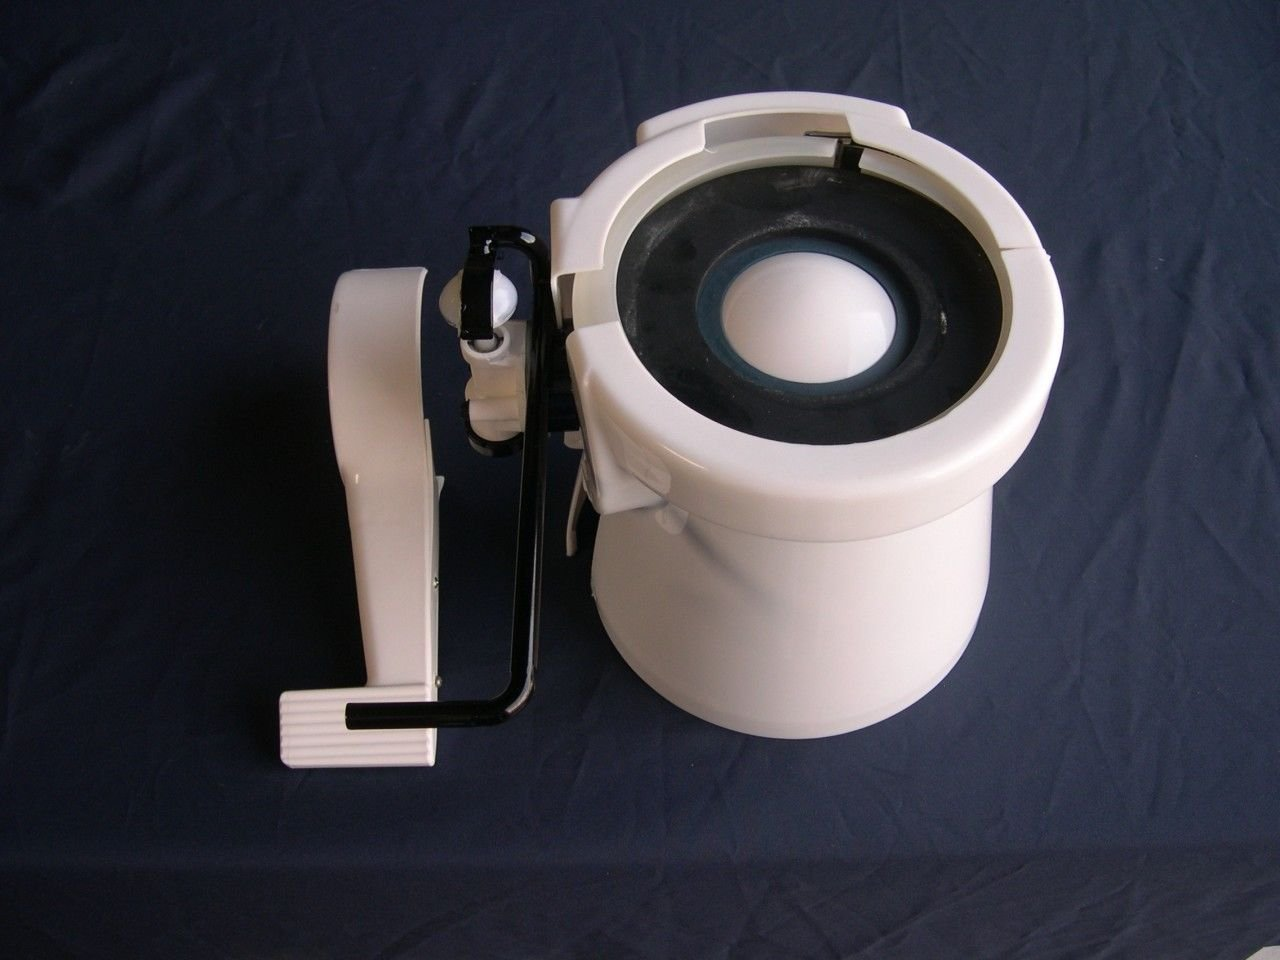 Dometic 385310120 Sealand Base Kit for 910 510 510+ & 2010 White Traveler Toilet by Dometic (Image #1)